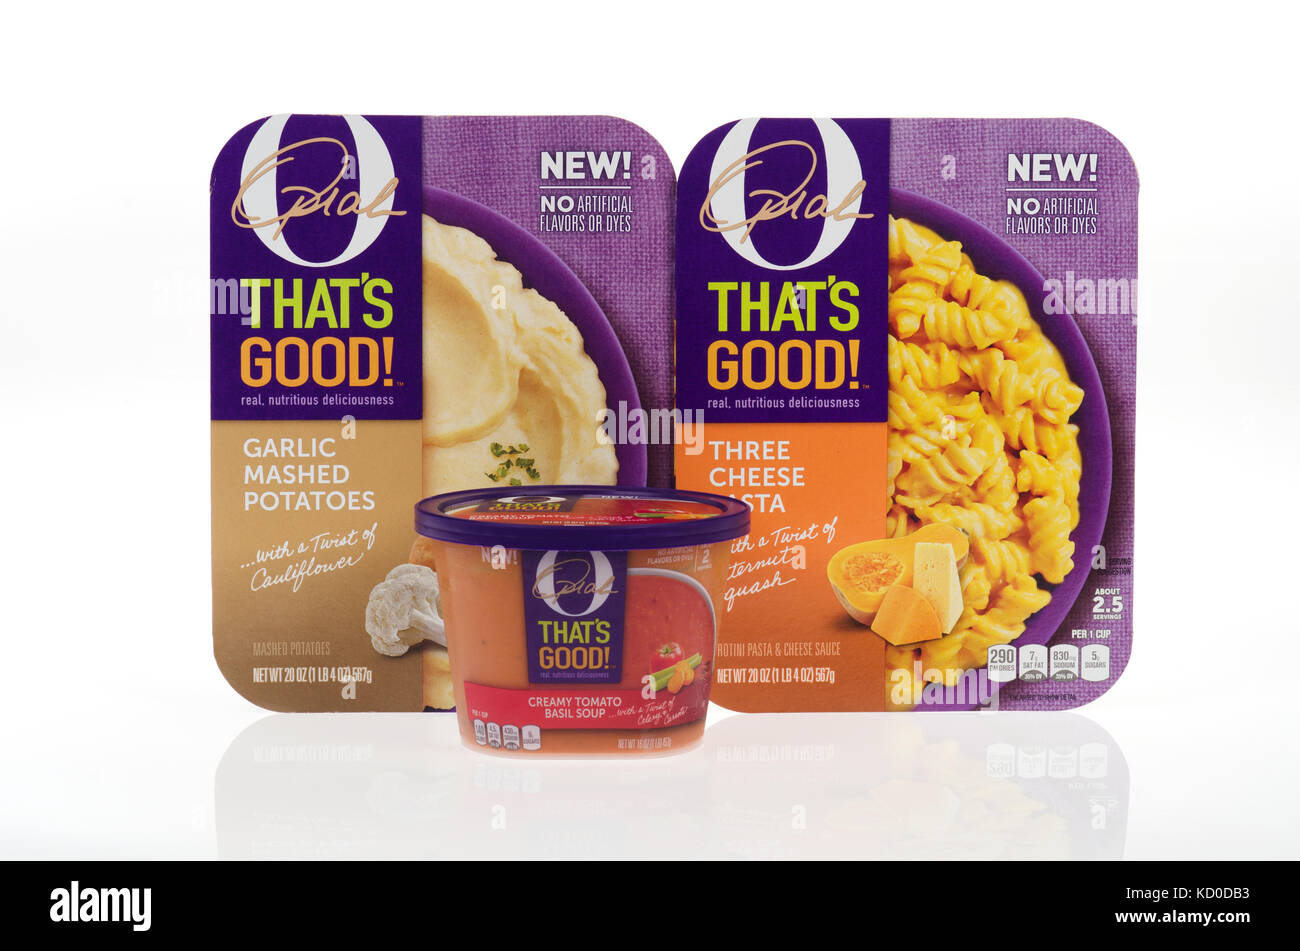 Oprah Winfrey's O THAT'S GOOD! prepared foods in packaging on white background cutout USA - Stock Image